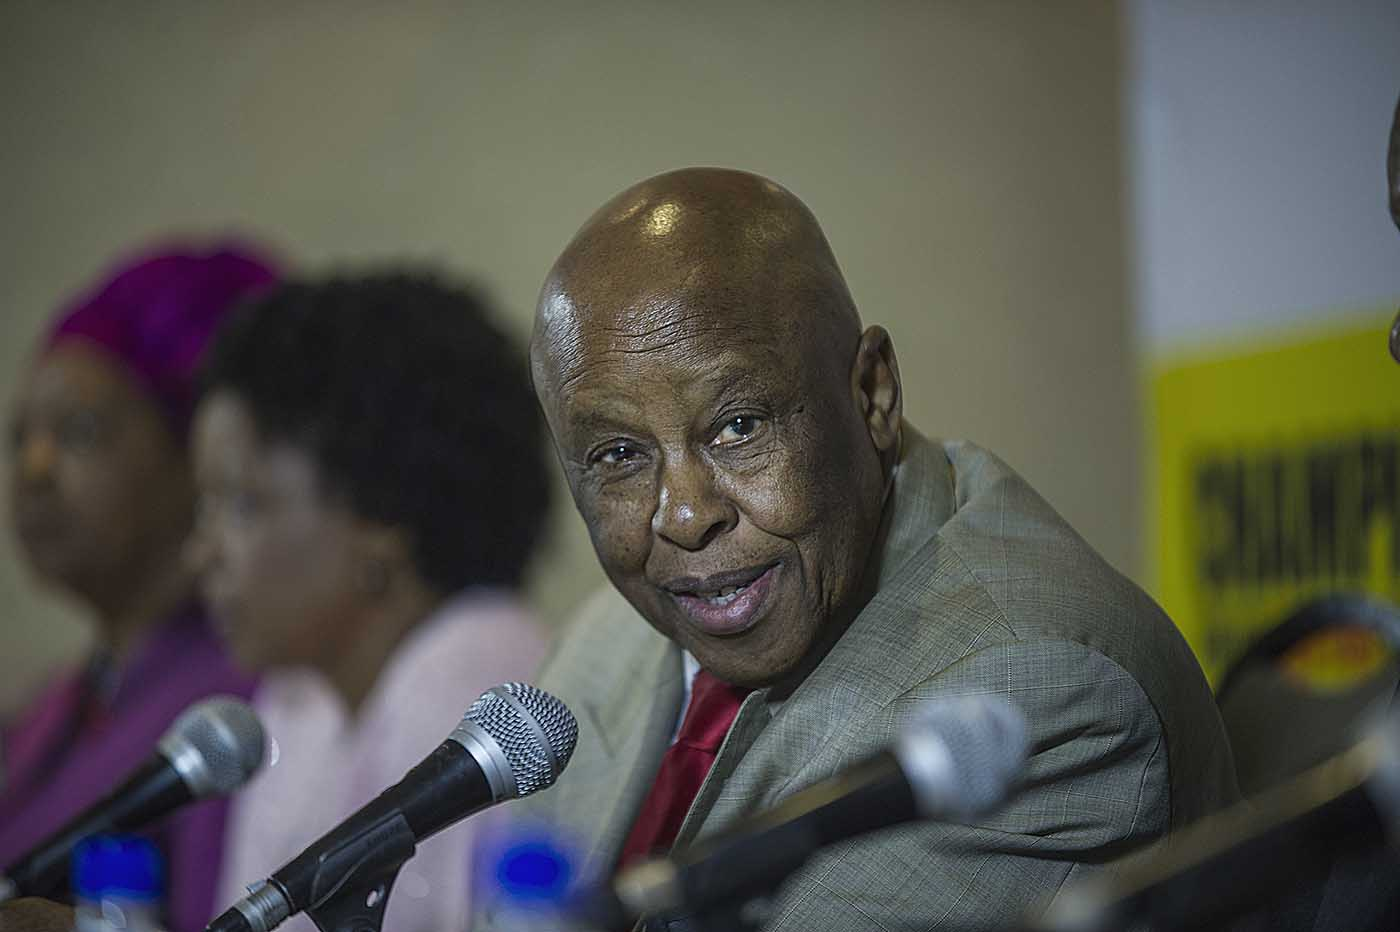 Former President of Botswana and Chairperson of the Champions, Festus Mogae, at the Champions press conference.